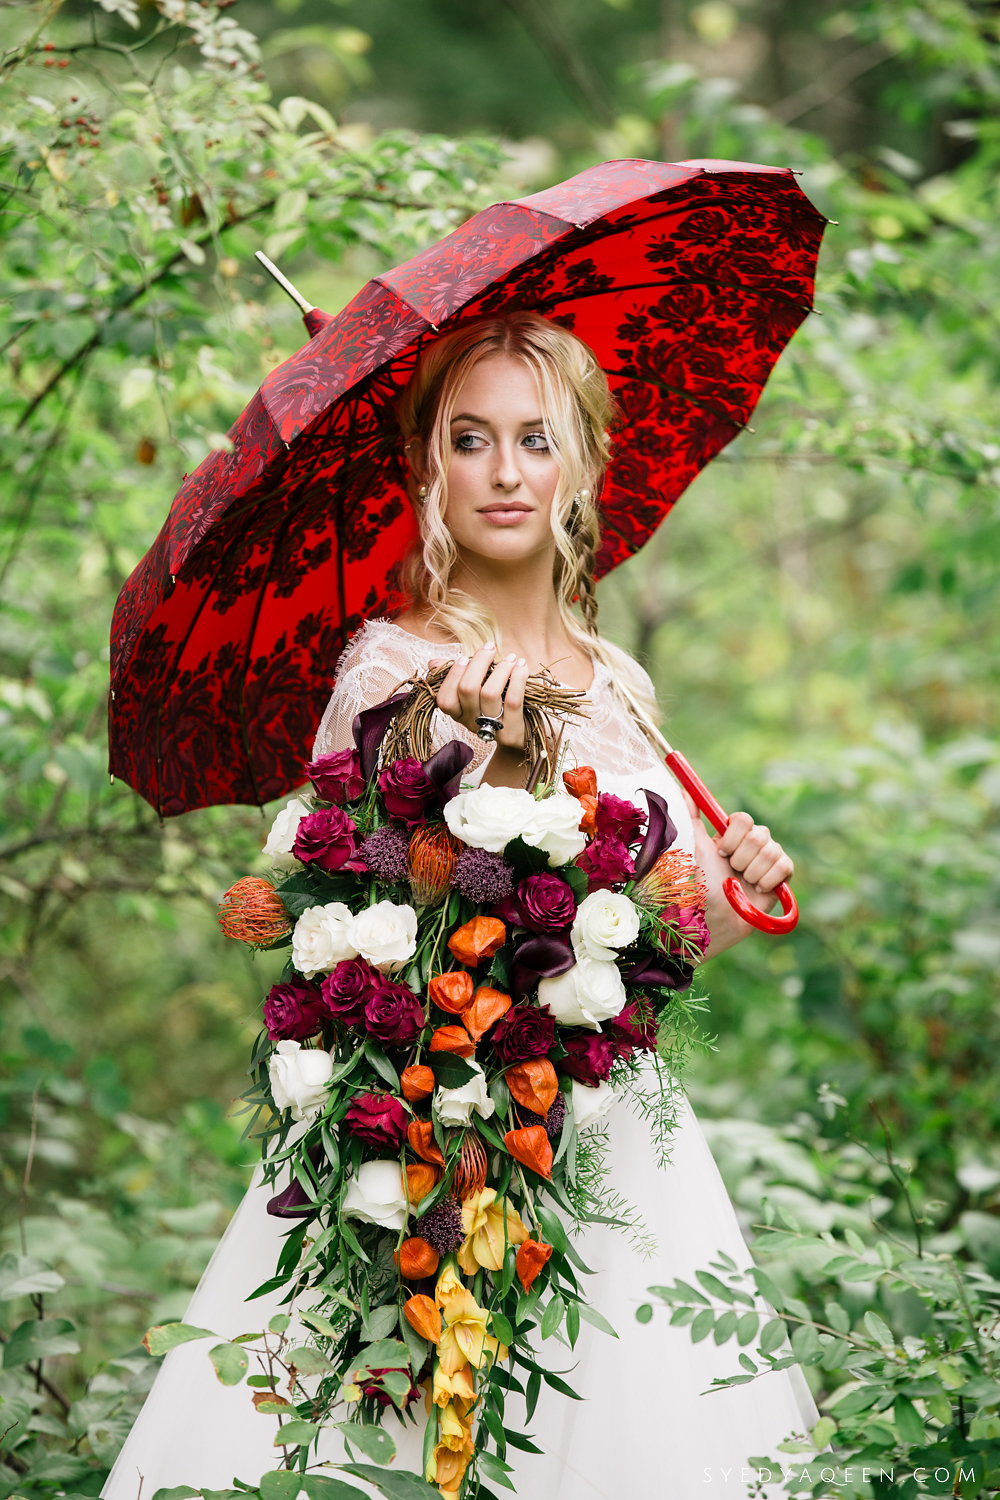 13 Bella Umbrella Teardrop Bouquet Alice in Wonderland Wedding Inspiration Philadelphia Wedding Planner.JPG